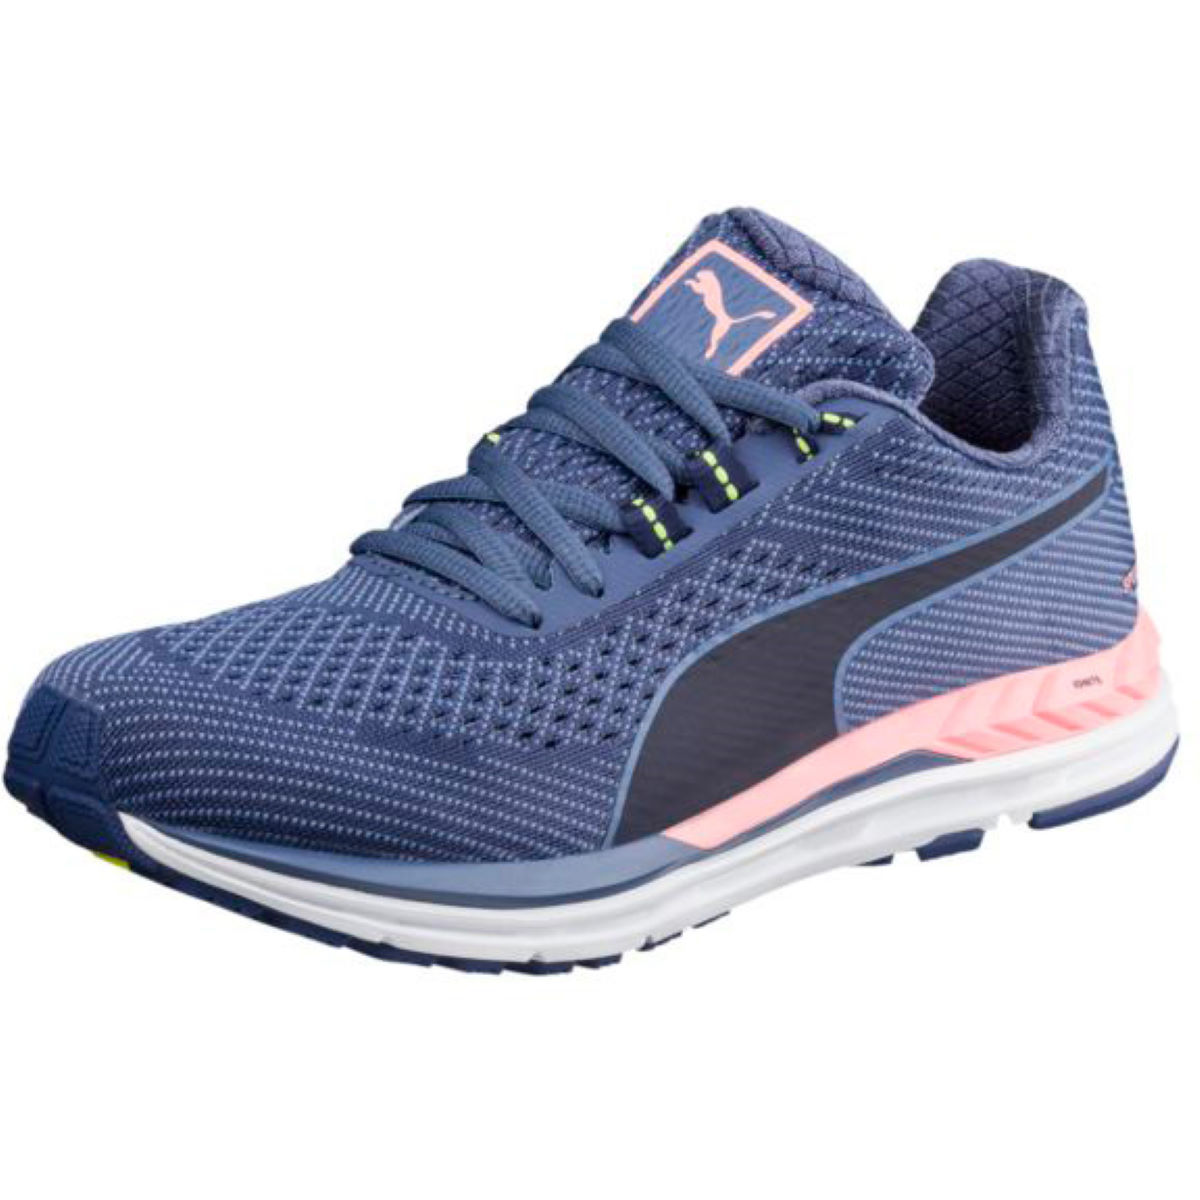 Chaussures Femme Puma Speed 600 S Ignite - UK 4 blue indigo